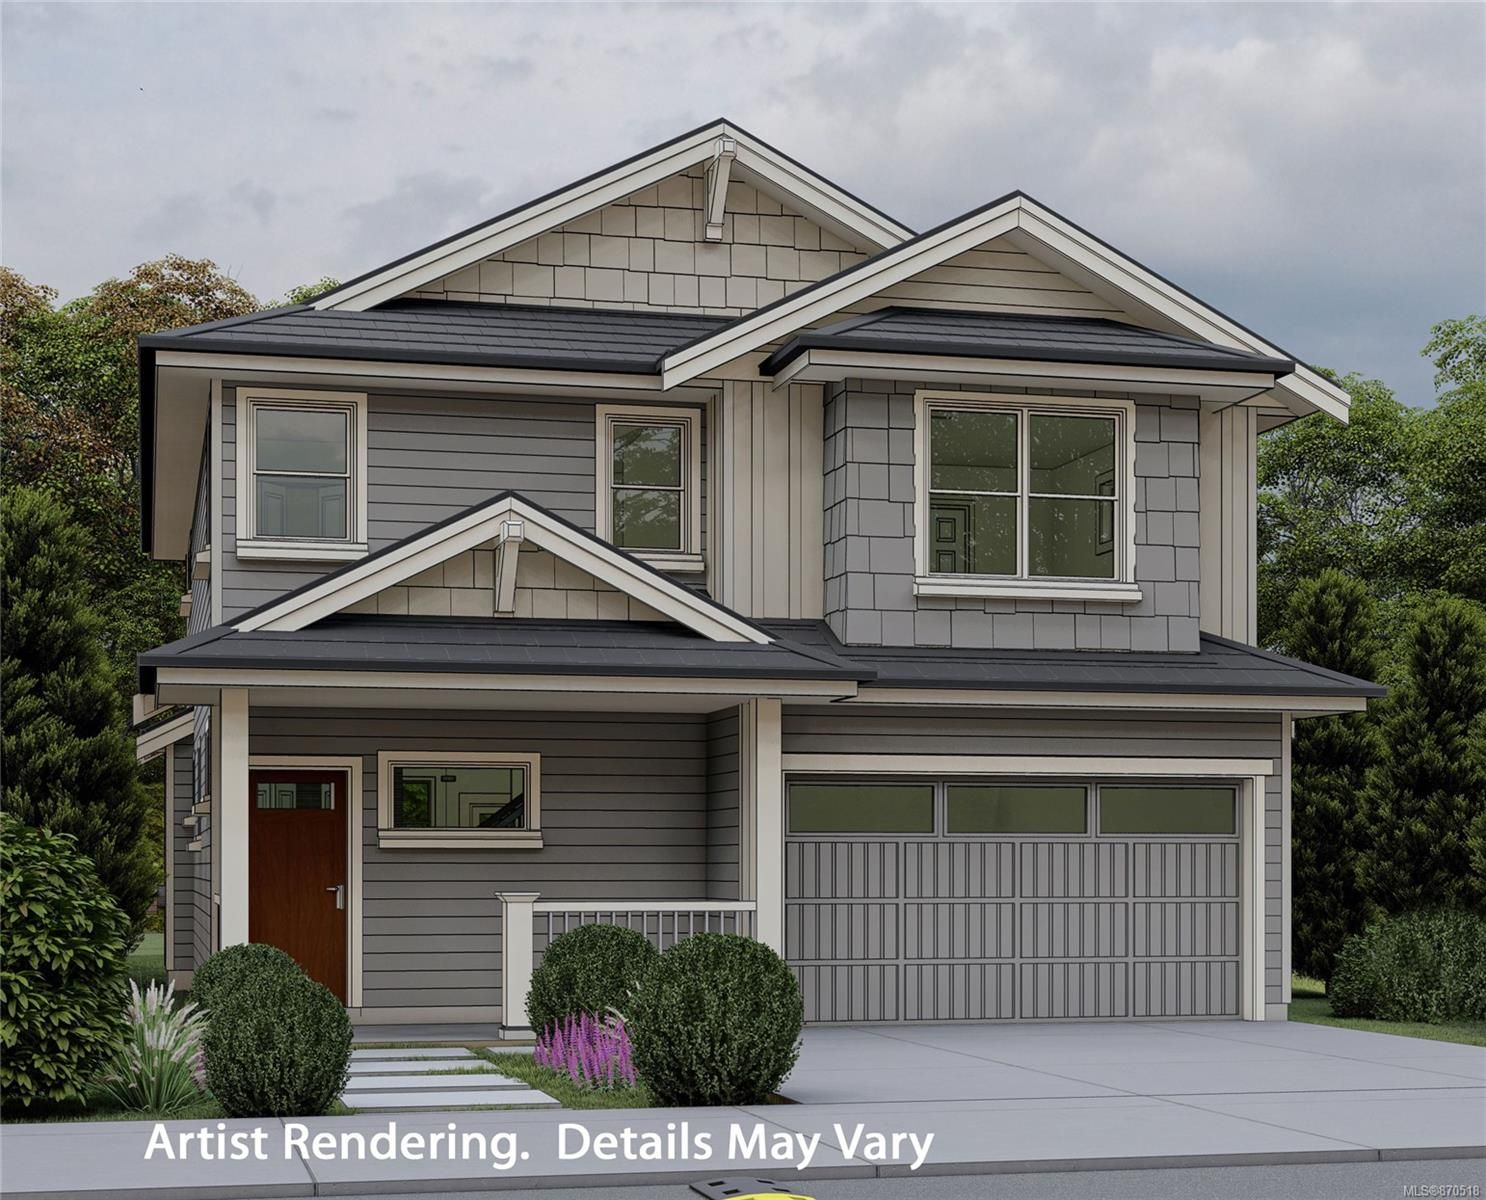 Main Photo: 929 Blakeon Pl in : La Olympic View House for sale (Langford)  : MLS®# 870518